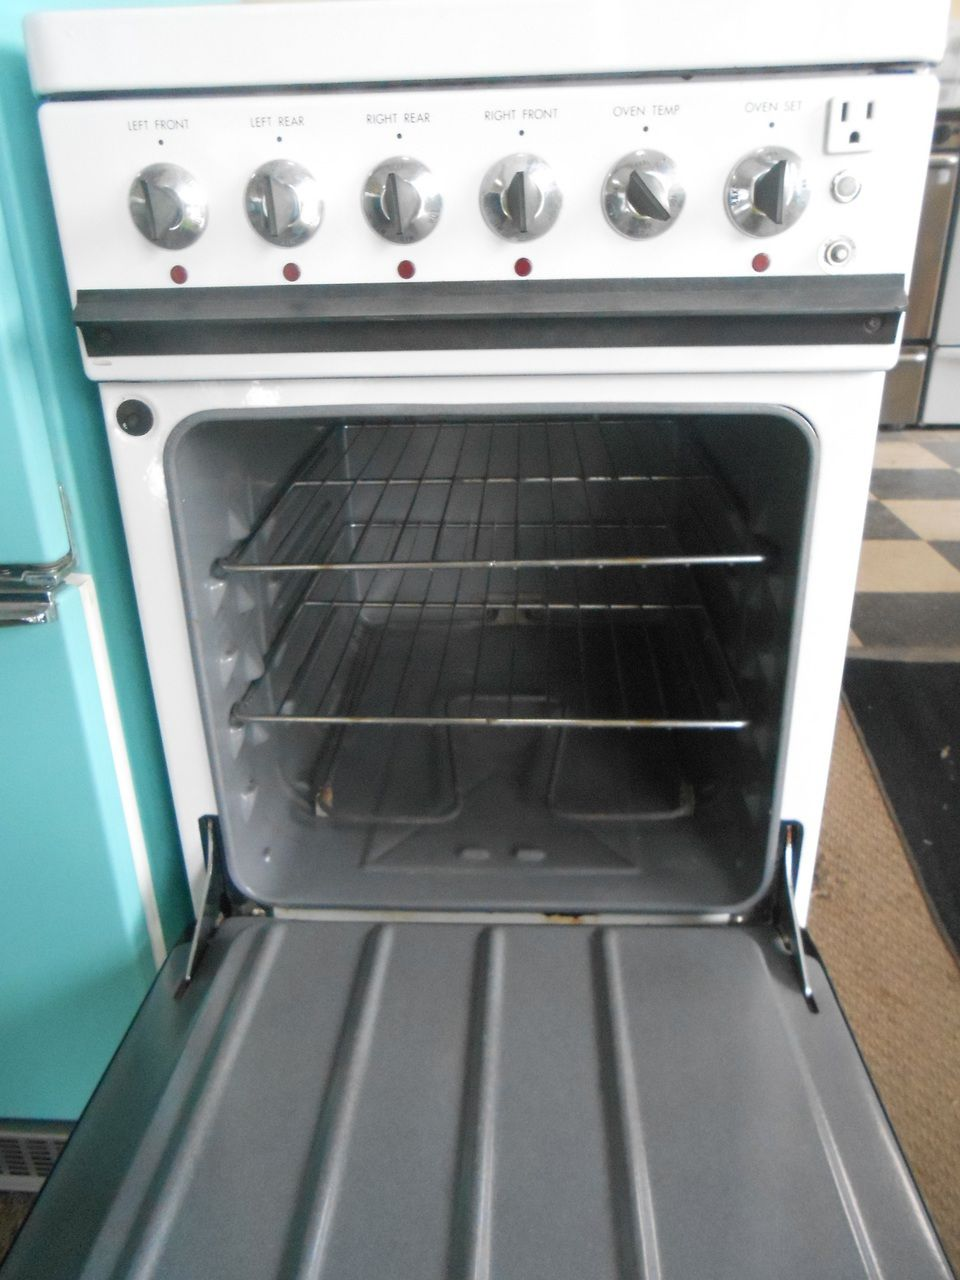 Appliance City - VINTAGE 20 INCH HOTPOINT ELECTRIC RANGE 4 BURNER ...